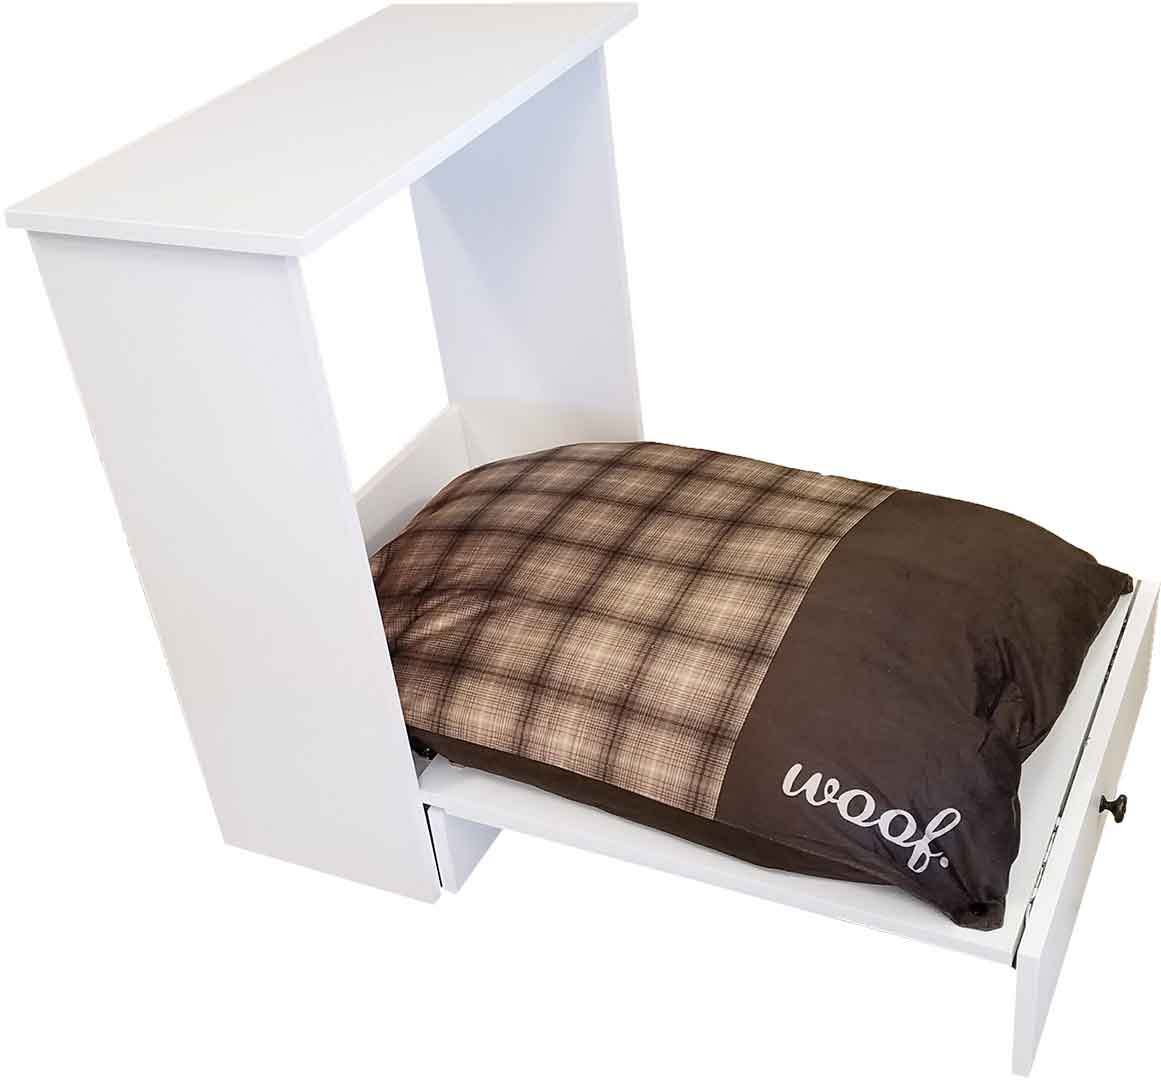 Wilding Wallbed Dog Bed with Food bowls